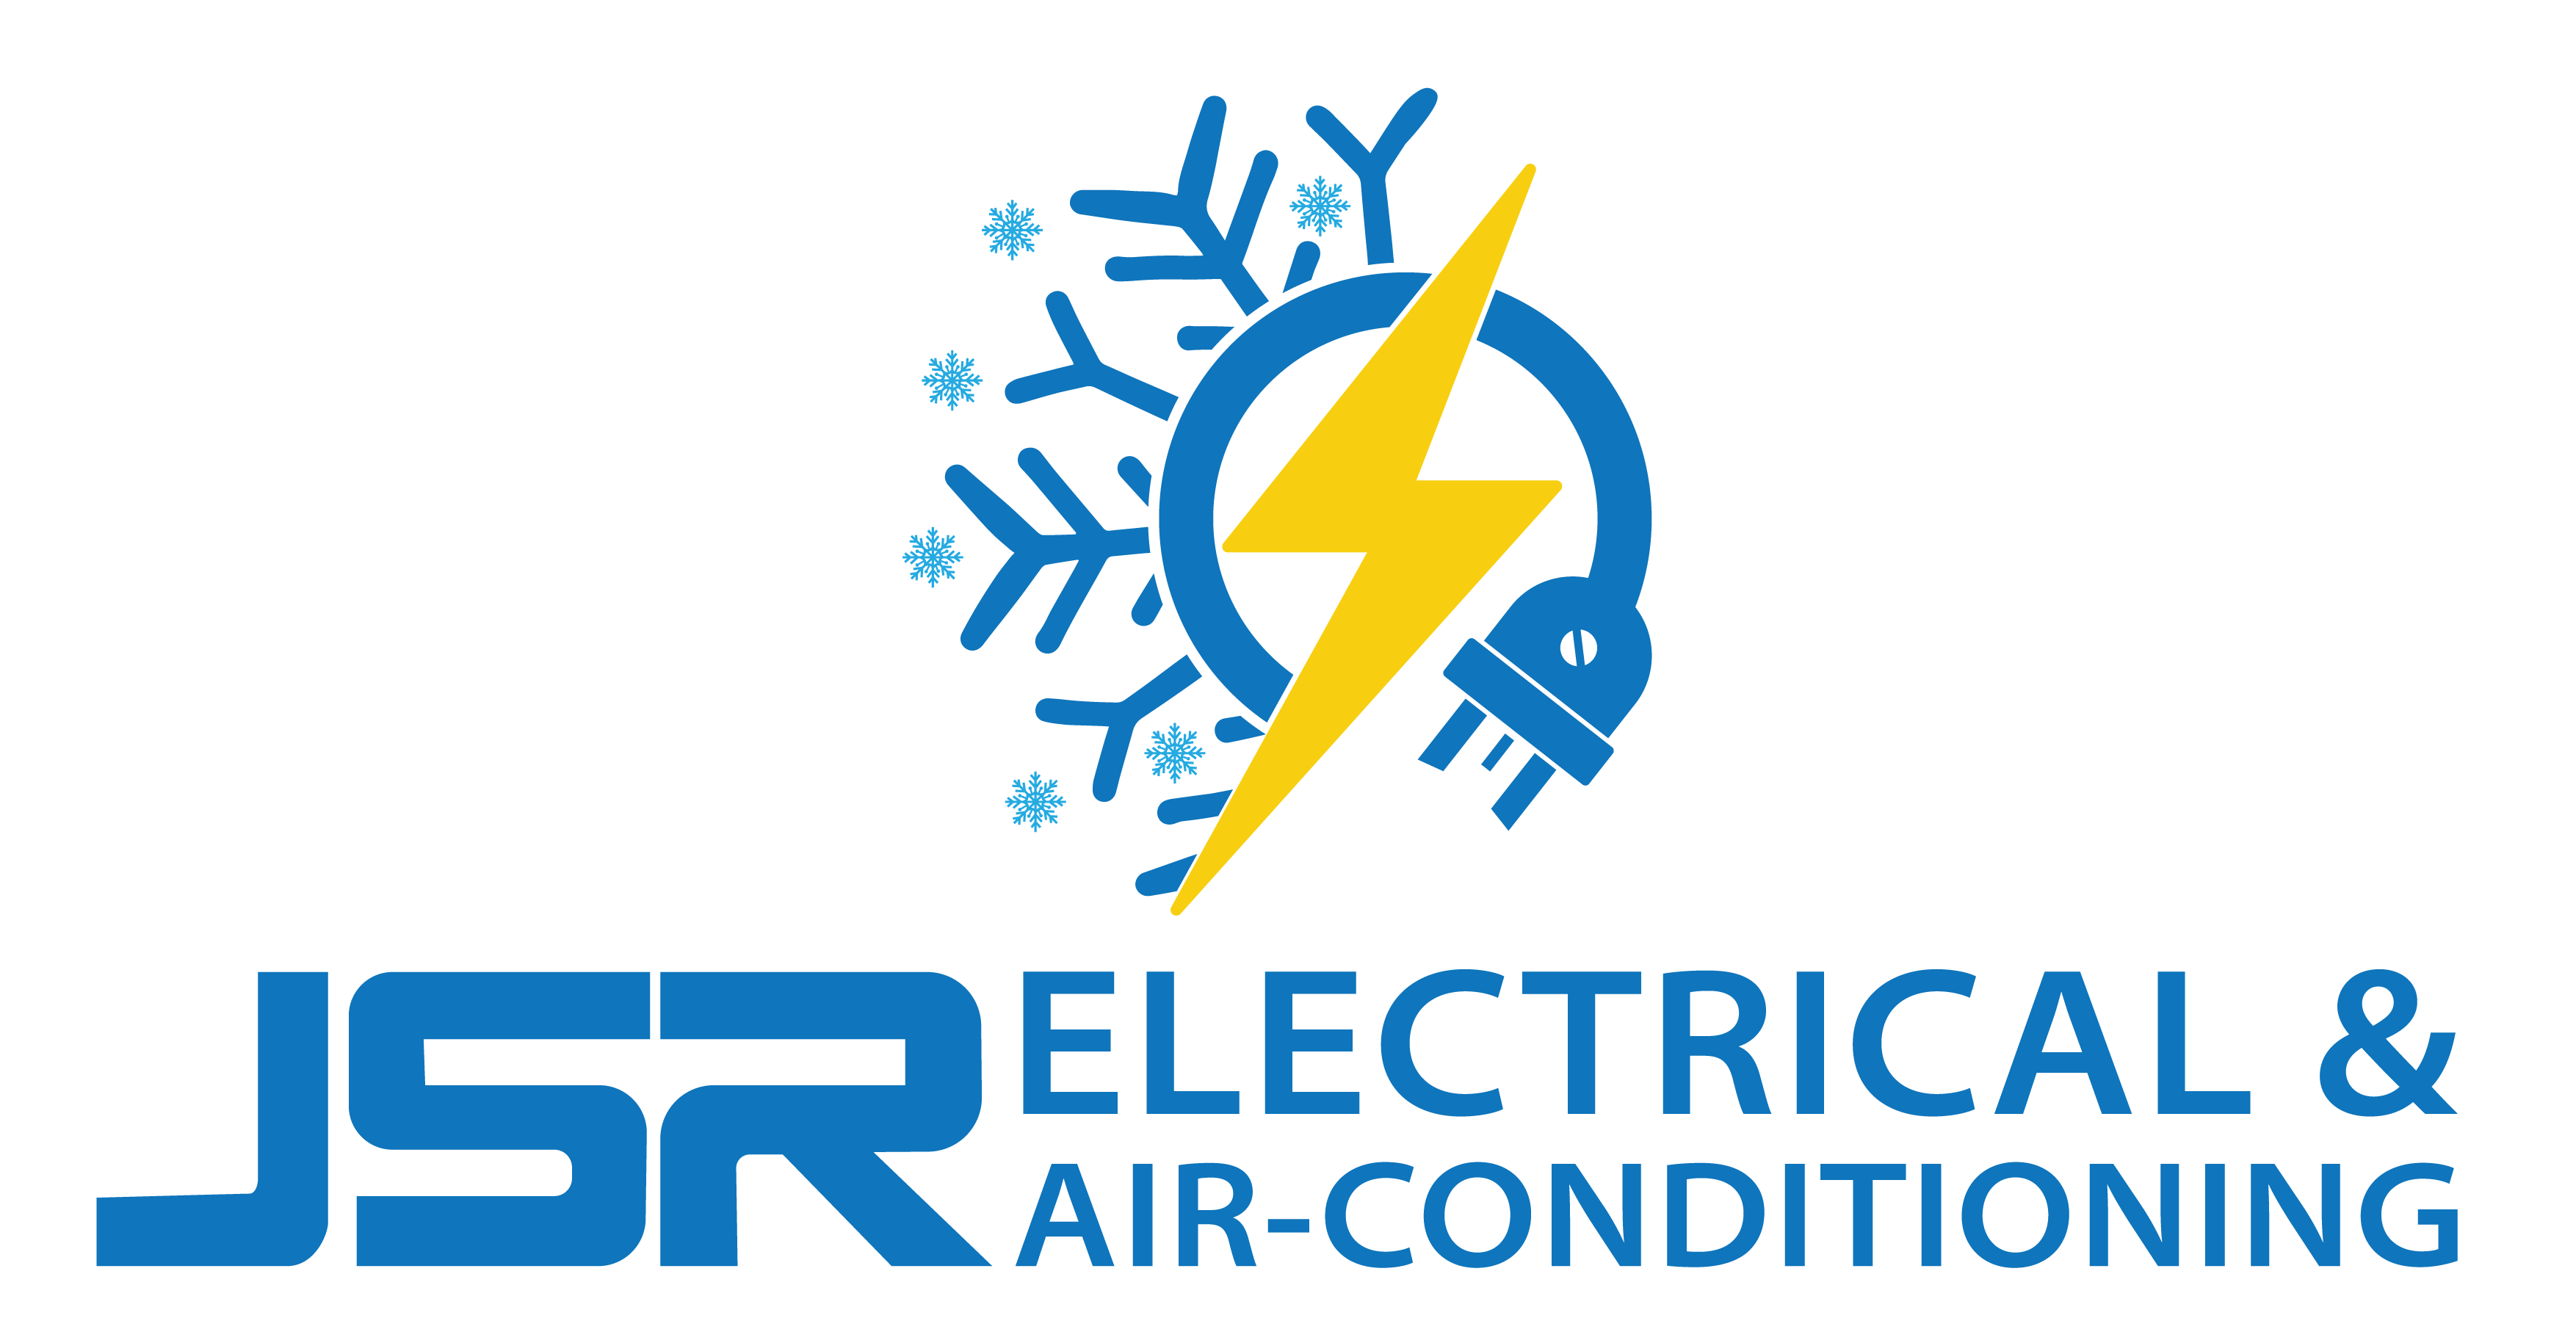 JSR Electrical & Airconditioning Logo